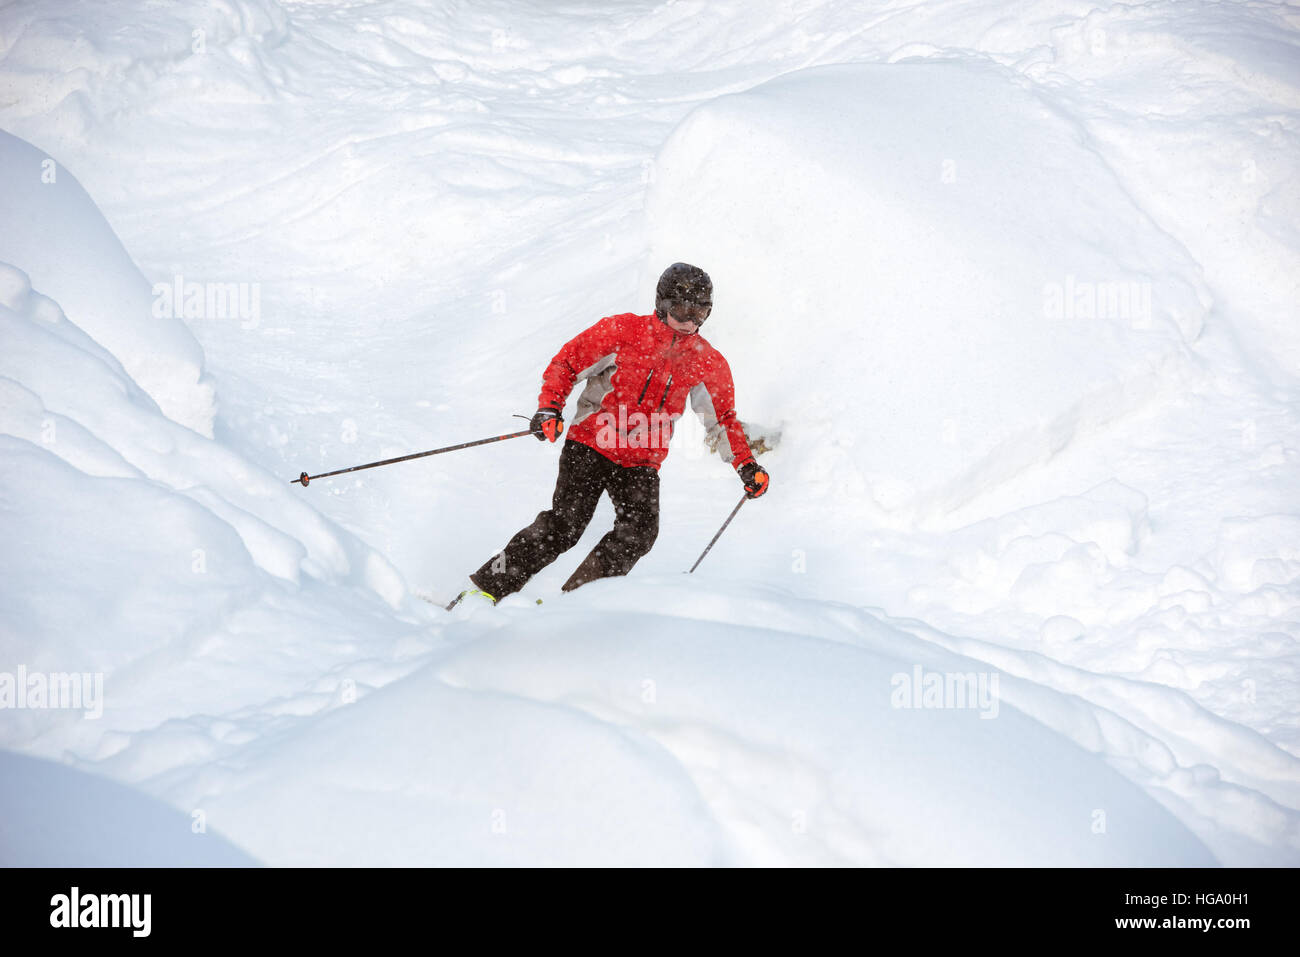 Young skier off-piste backcountry freeride - Stock Image